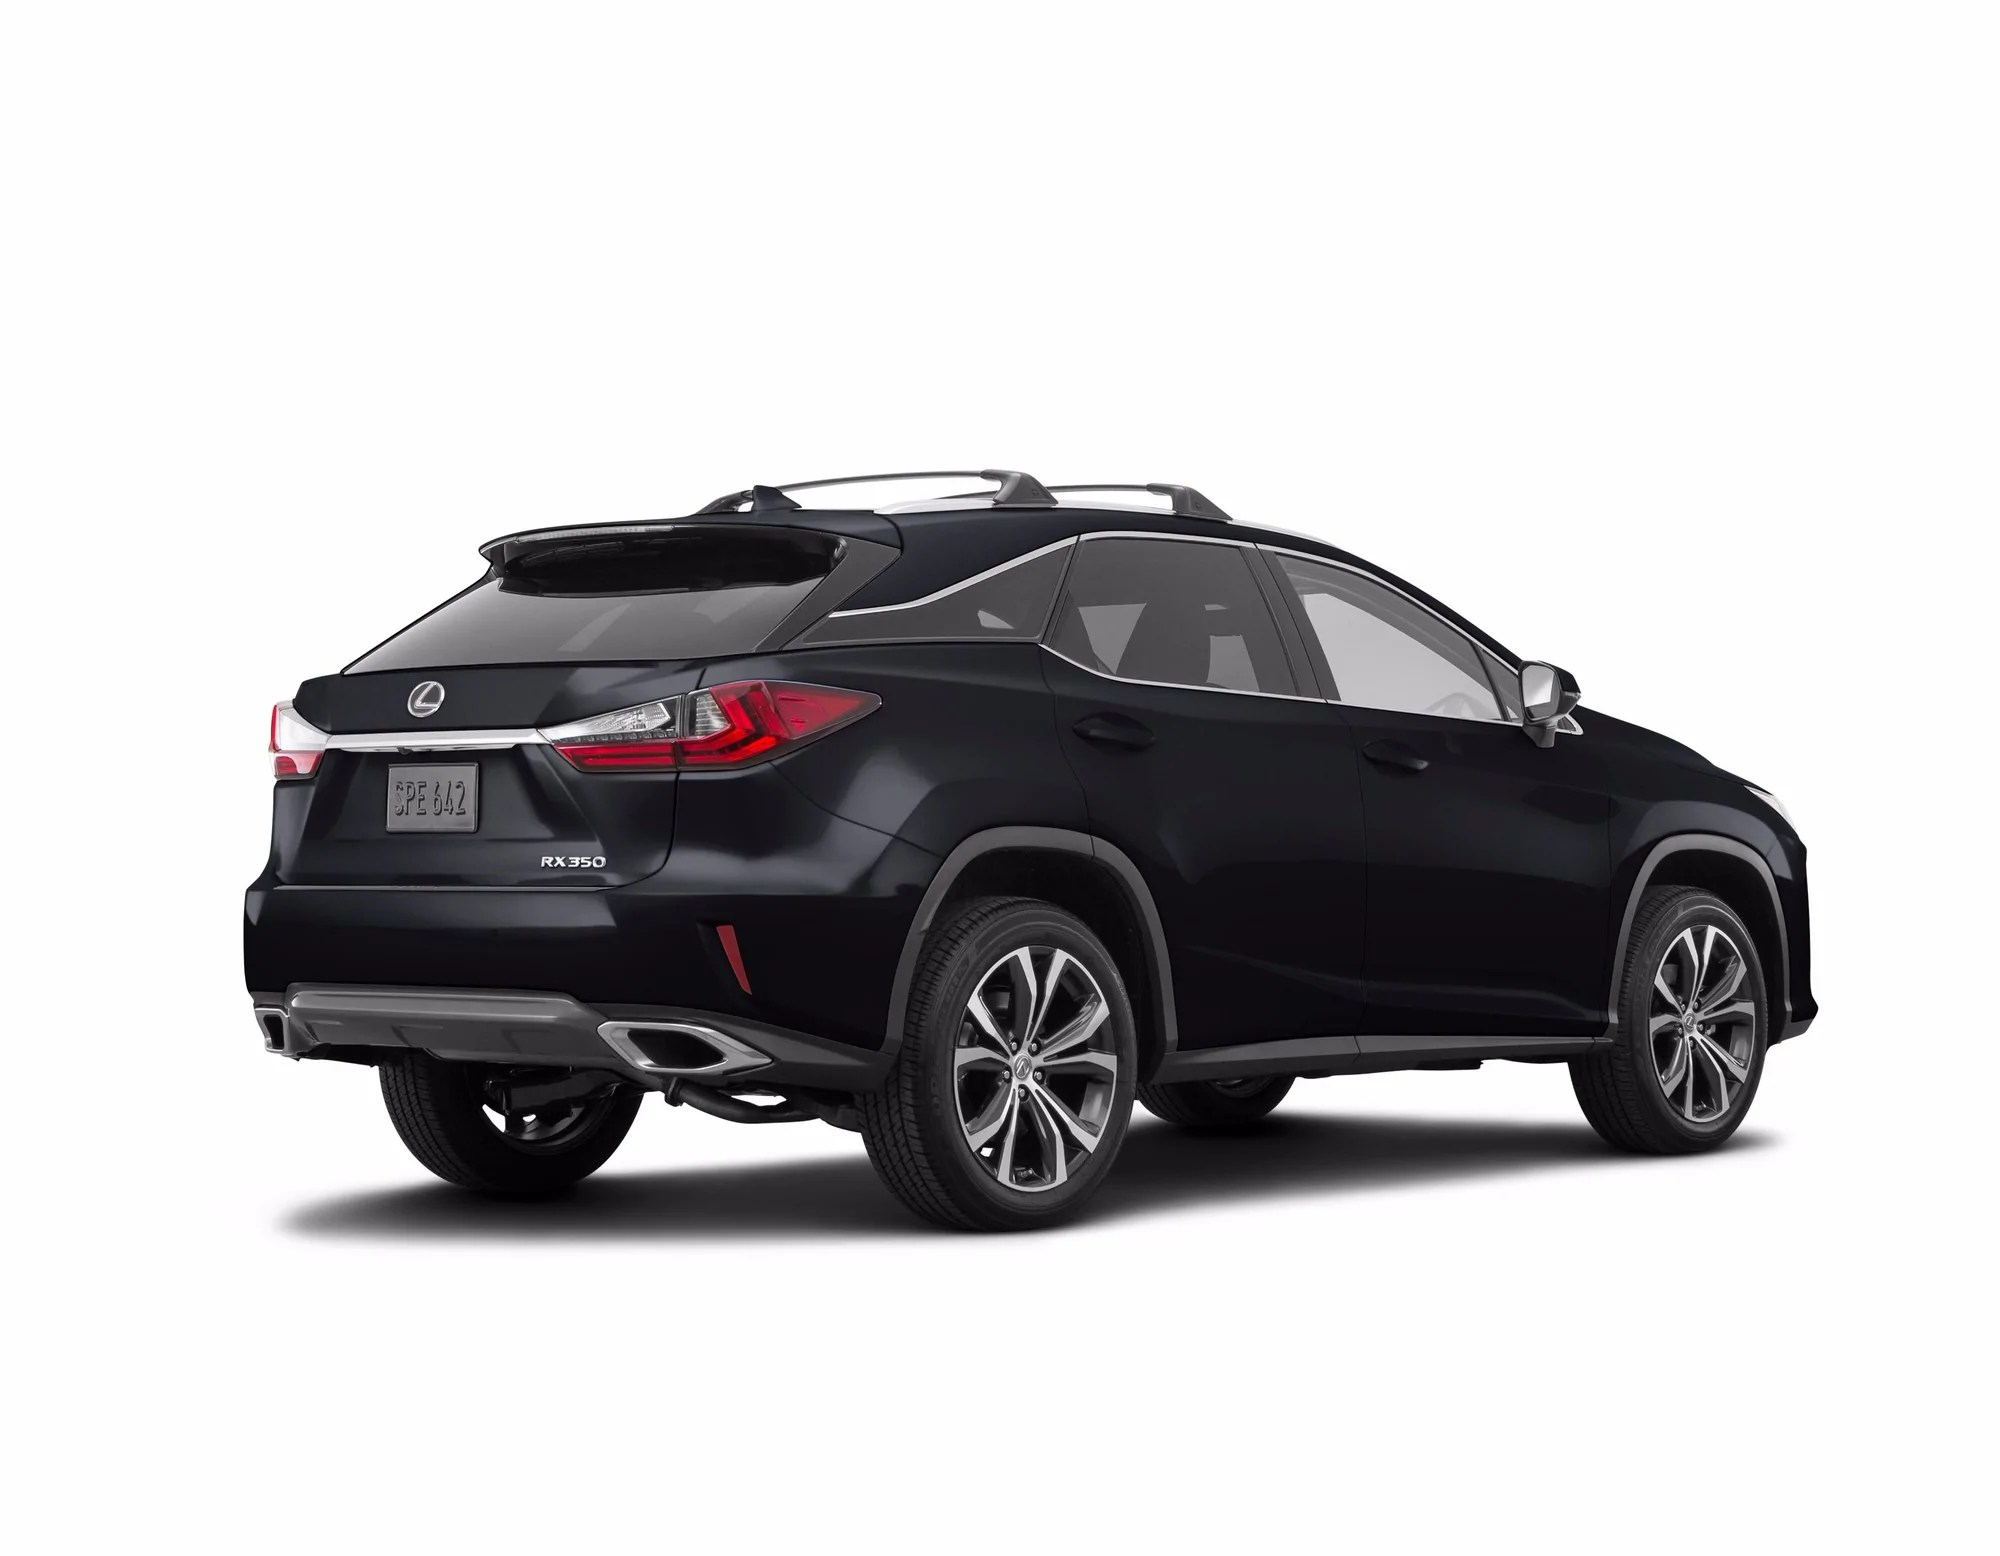 hight resolution of lexus rx 350 al10 hitch 2010 2015 stealth hitches premium lexus